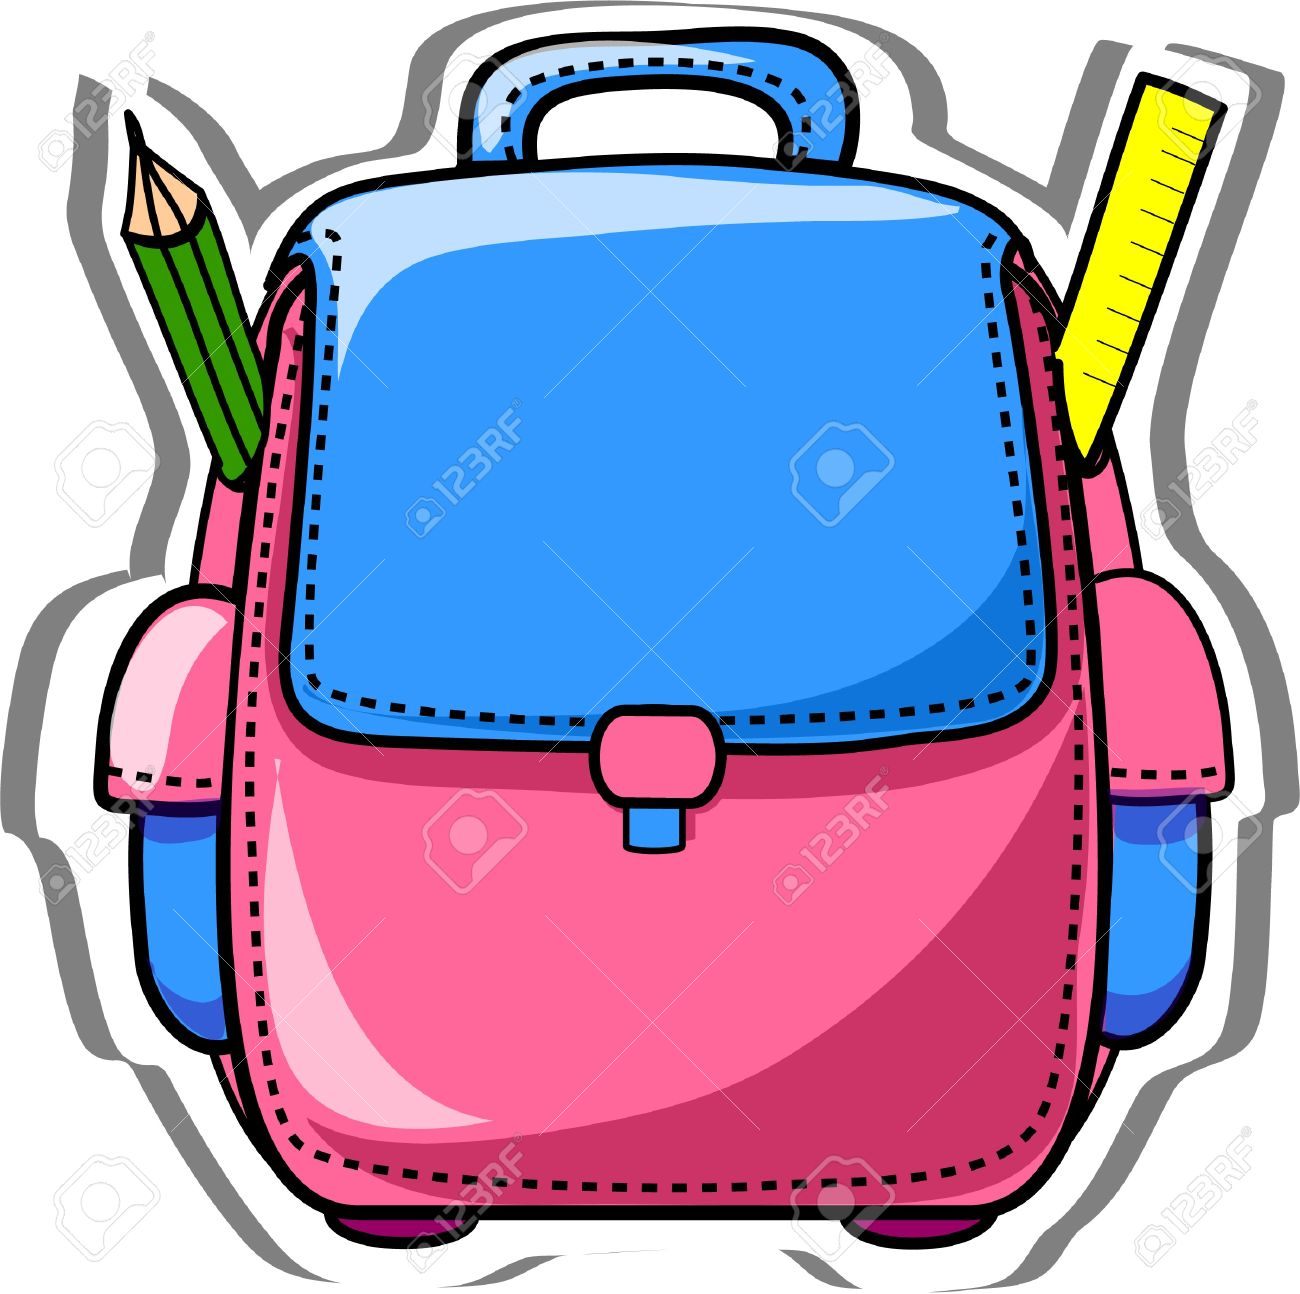 Book bags clipart.